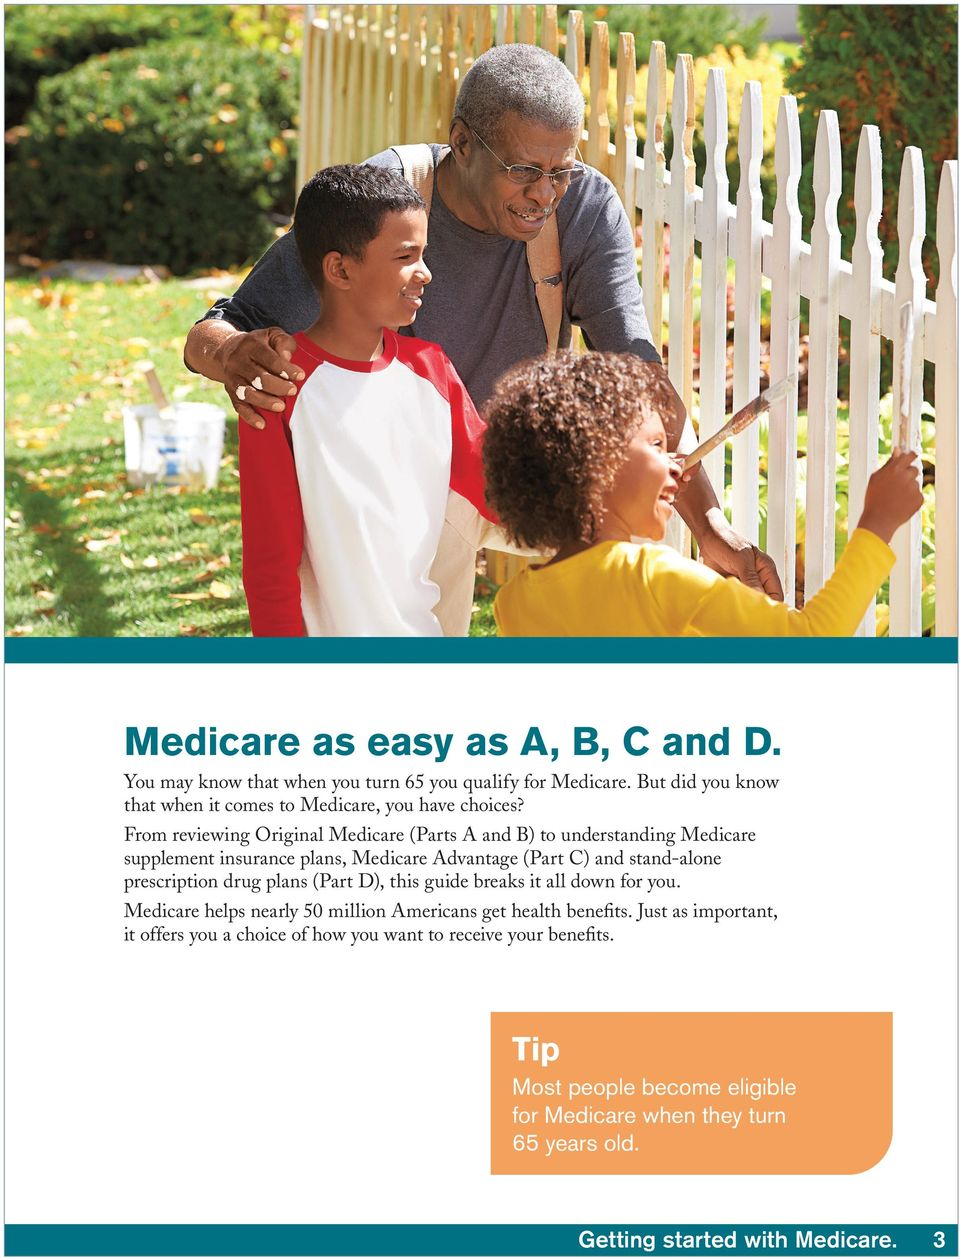 From reviewing Original Medicare (Parts A and B) to understanding Medicare supplement insurance plans, Medicare Advantage (Part C) and stand-alone prescription